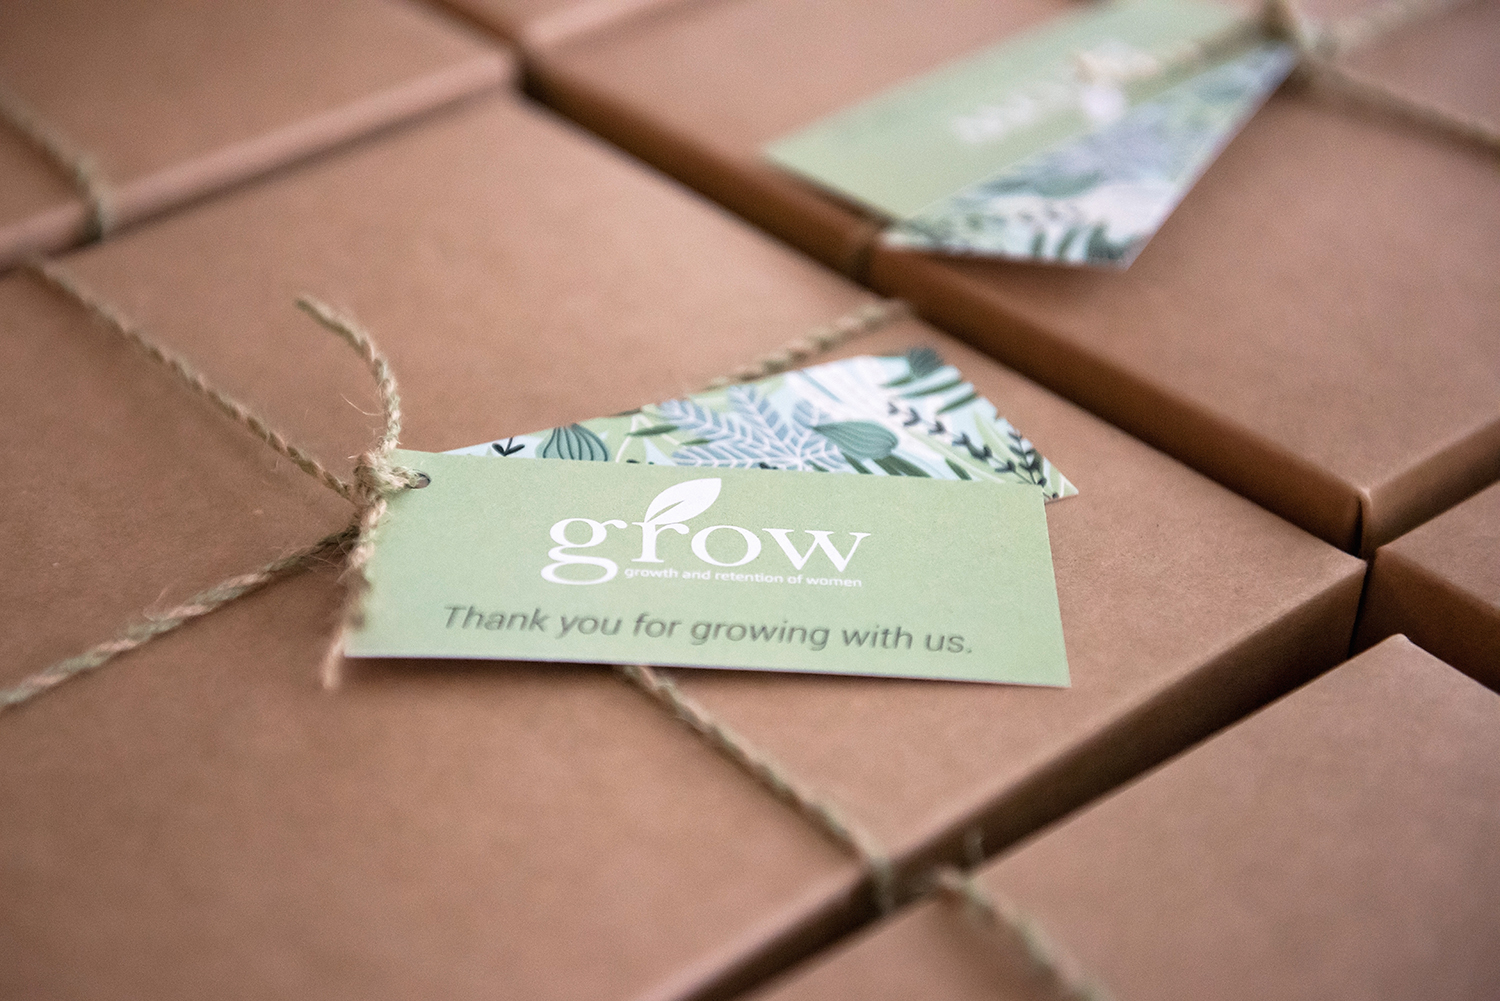 Christine Horton Photography captured an image of the giveaways for Baker Tilly' and Baker Tilly Vantagen's annual GROW event. Gretchen Rubin spoke at the event.